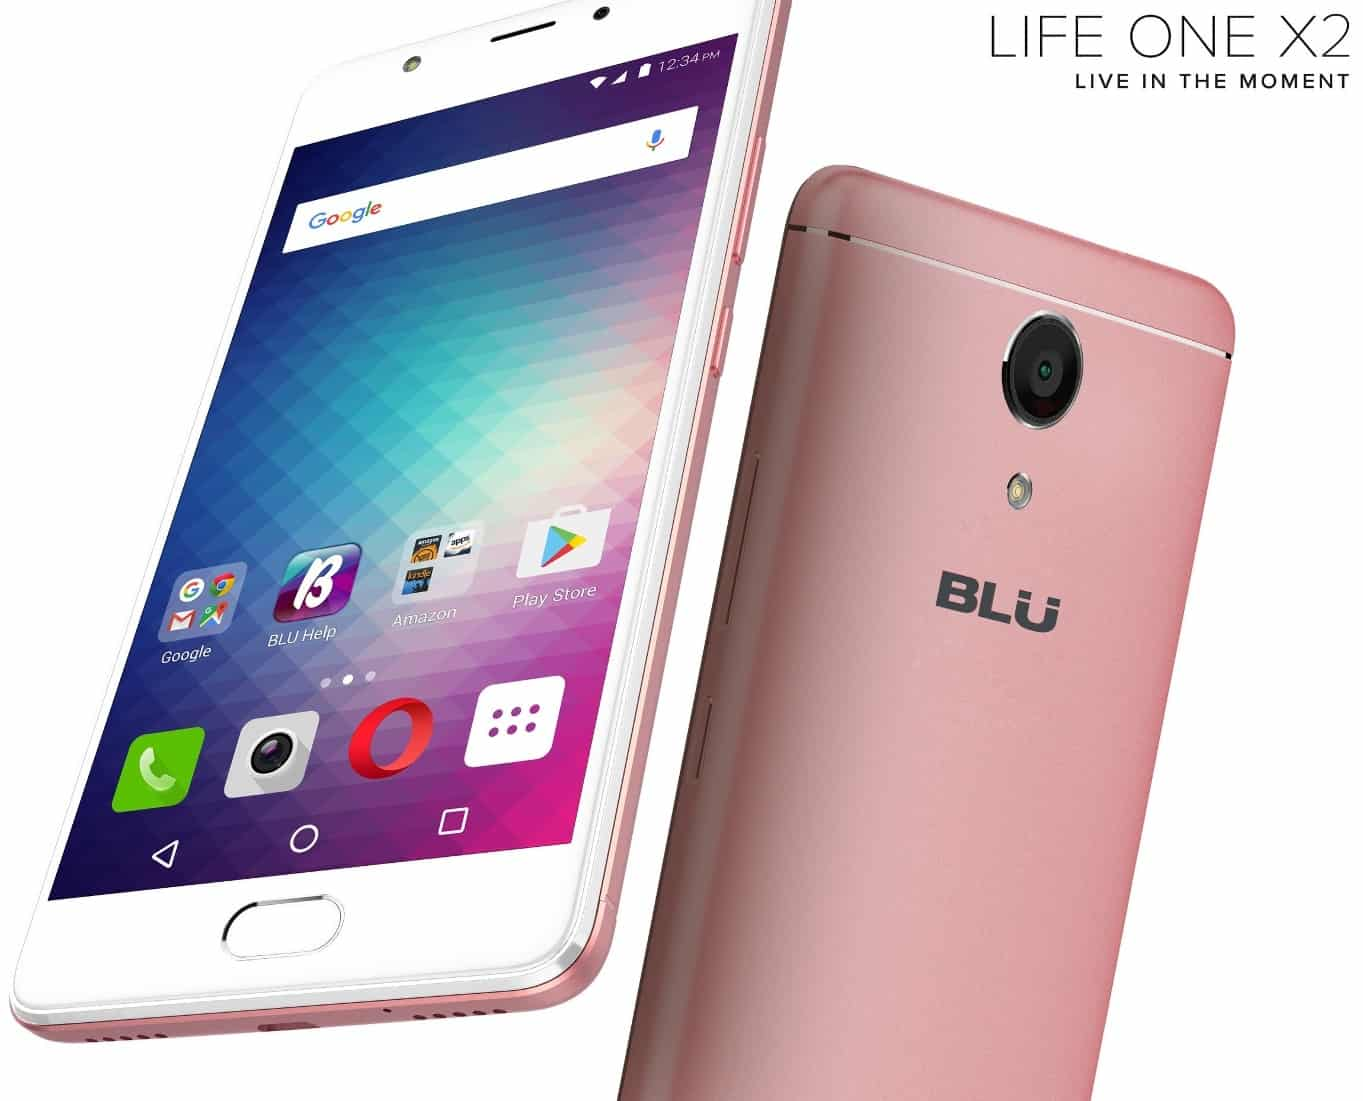 Blu Life One X2 Android Samrtphone With Same Price ($149.99) And Better Performance